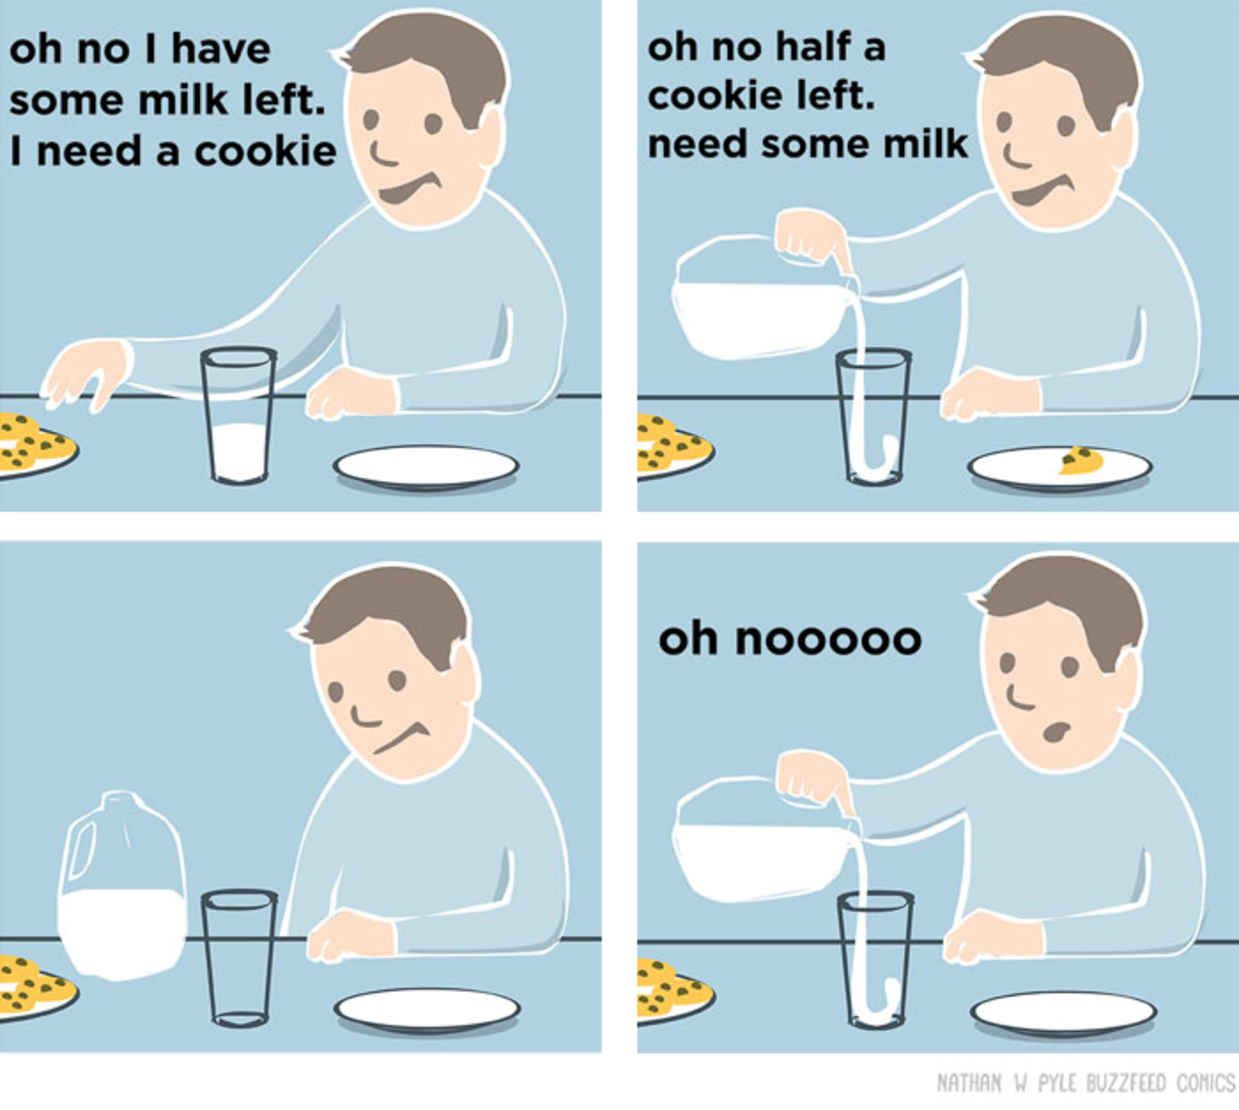 Puts Funny Twist On Seriously Relatable Everyday Situations - Illustrator puts funny twist on seriously relatable everyday situations